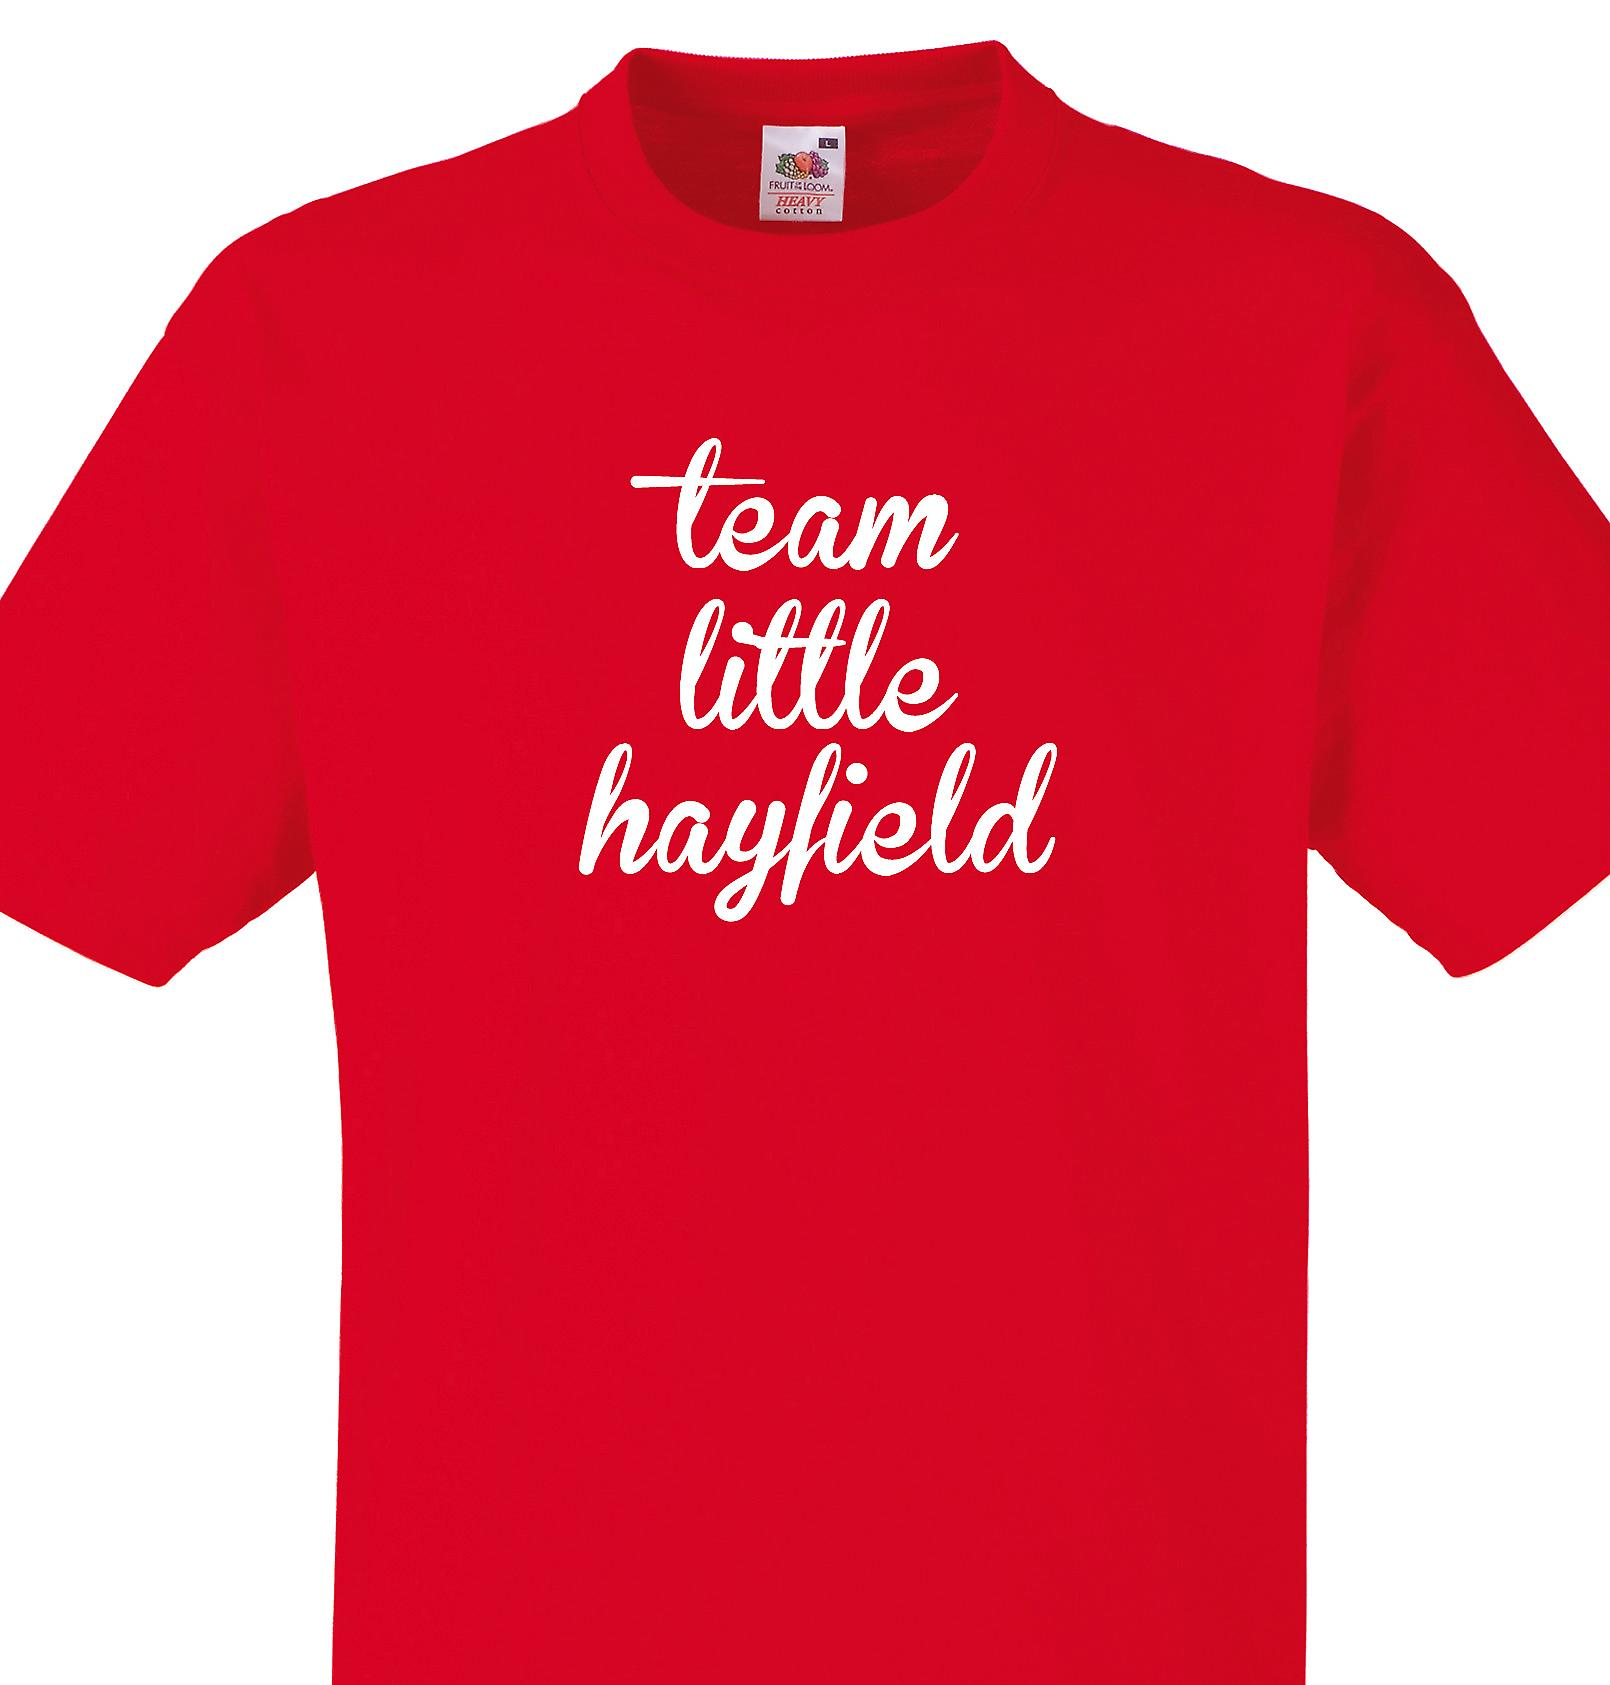 Team Little hayfield Red T shirt